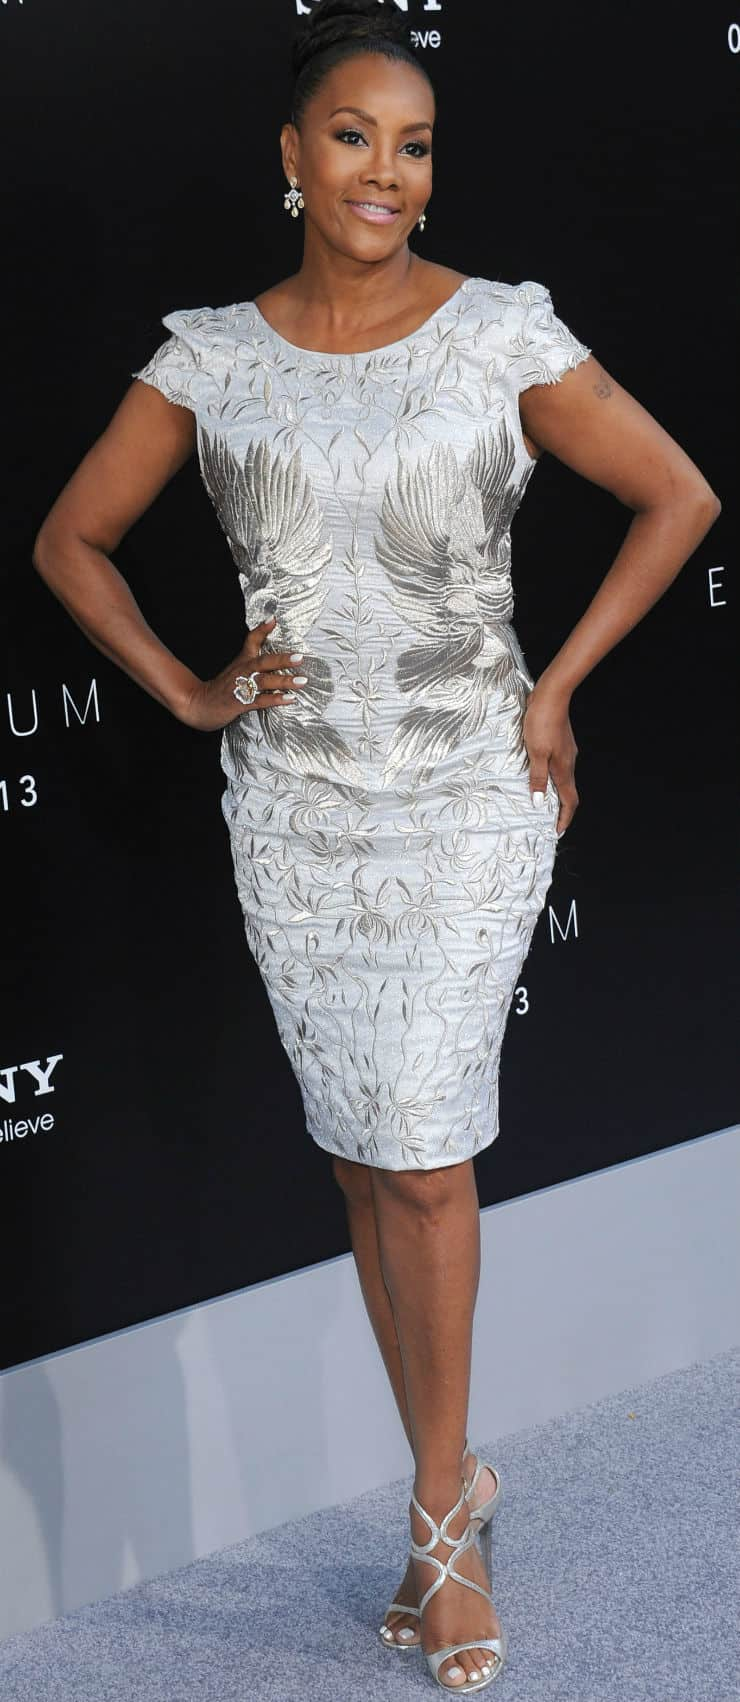 Vivica wrap dress - Vivica Fox Has A Style That Can Be Termed As Normal This Is What I Like About Her She Does Not Really Dress In A High End Elegant Manner But She Still